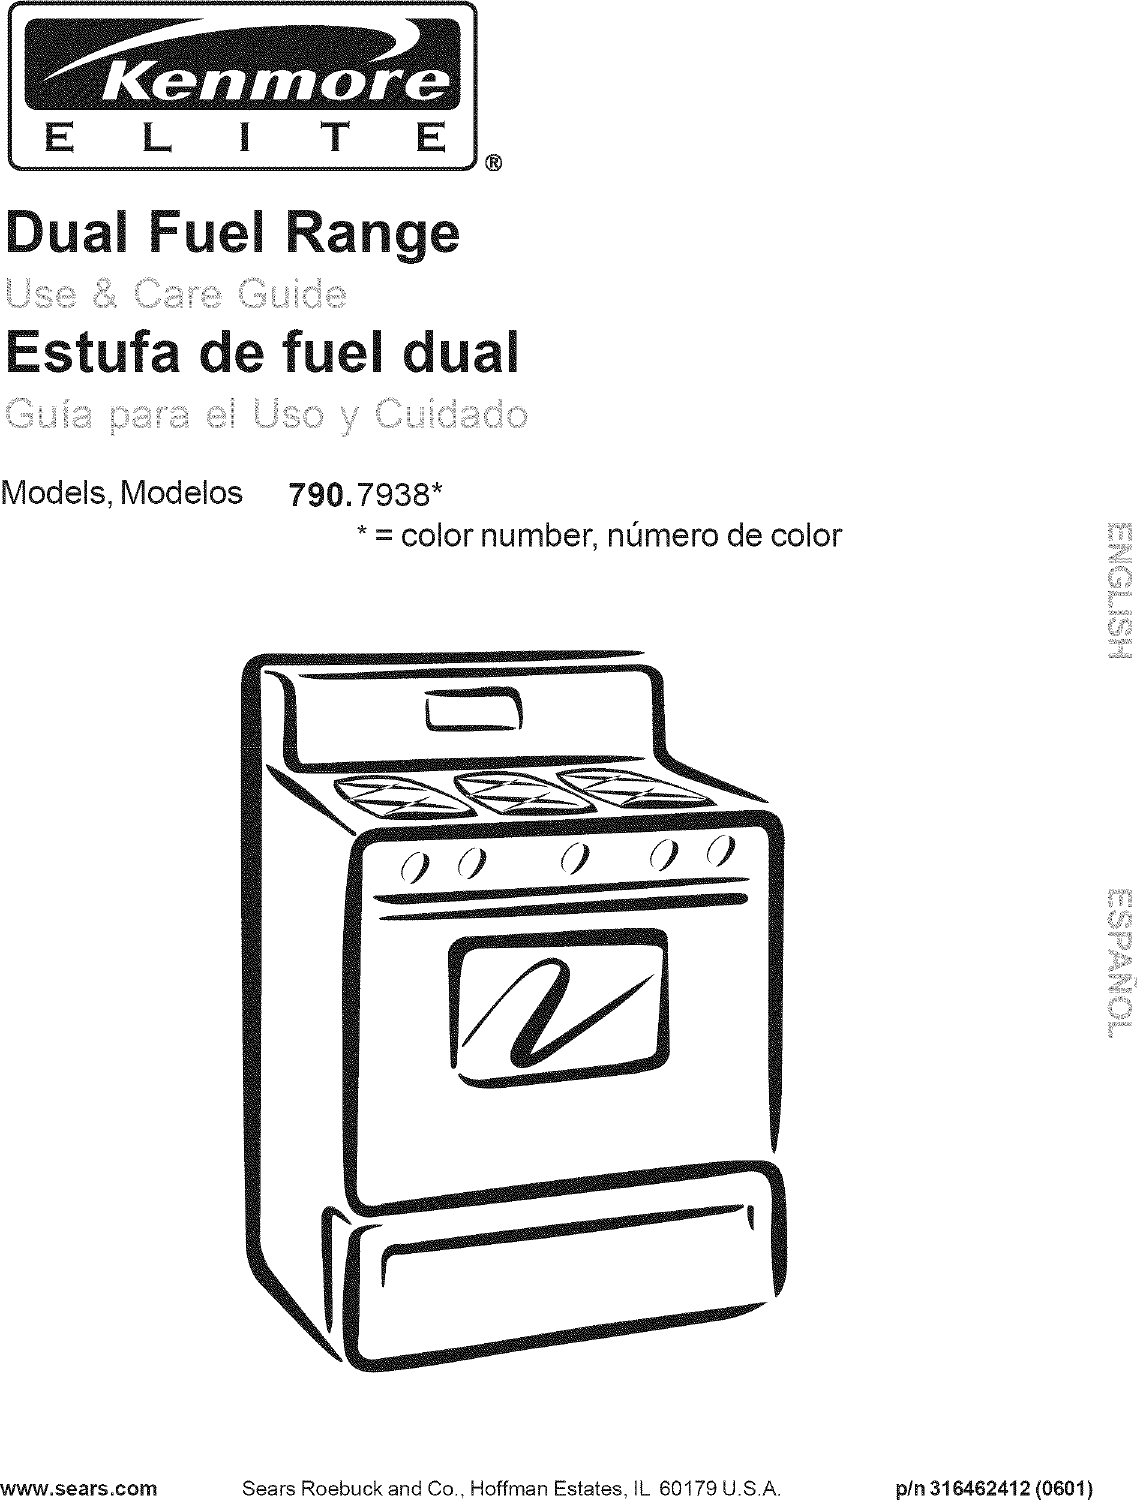 Kenmore Elite 79079382406 User Manual DUAL FUEL RANGE